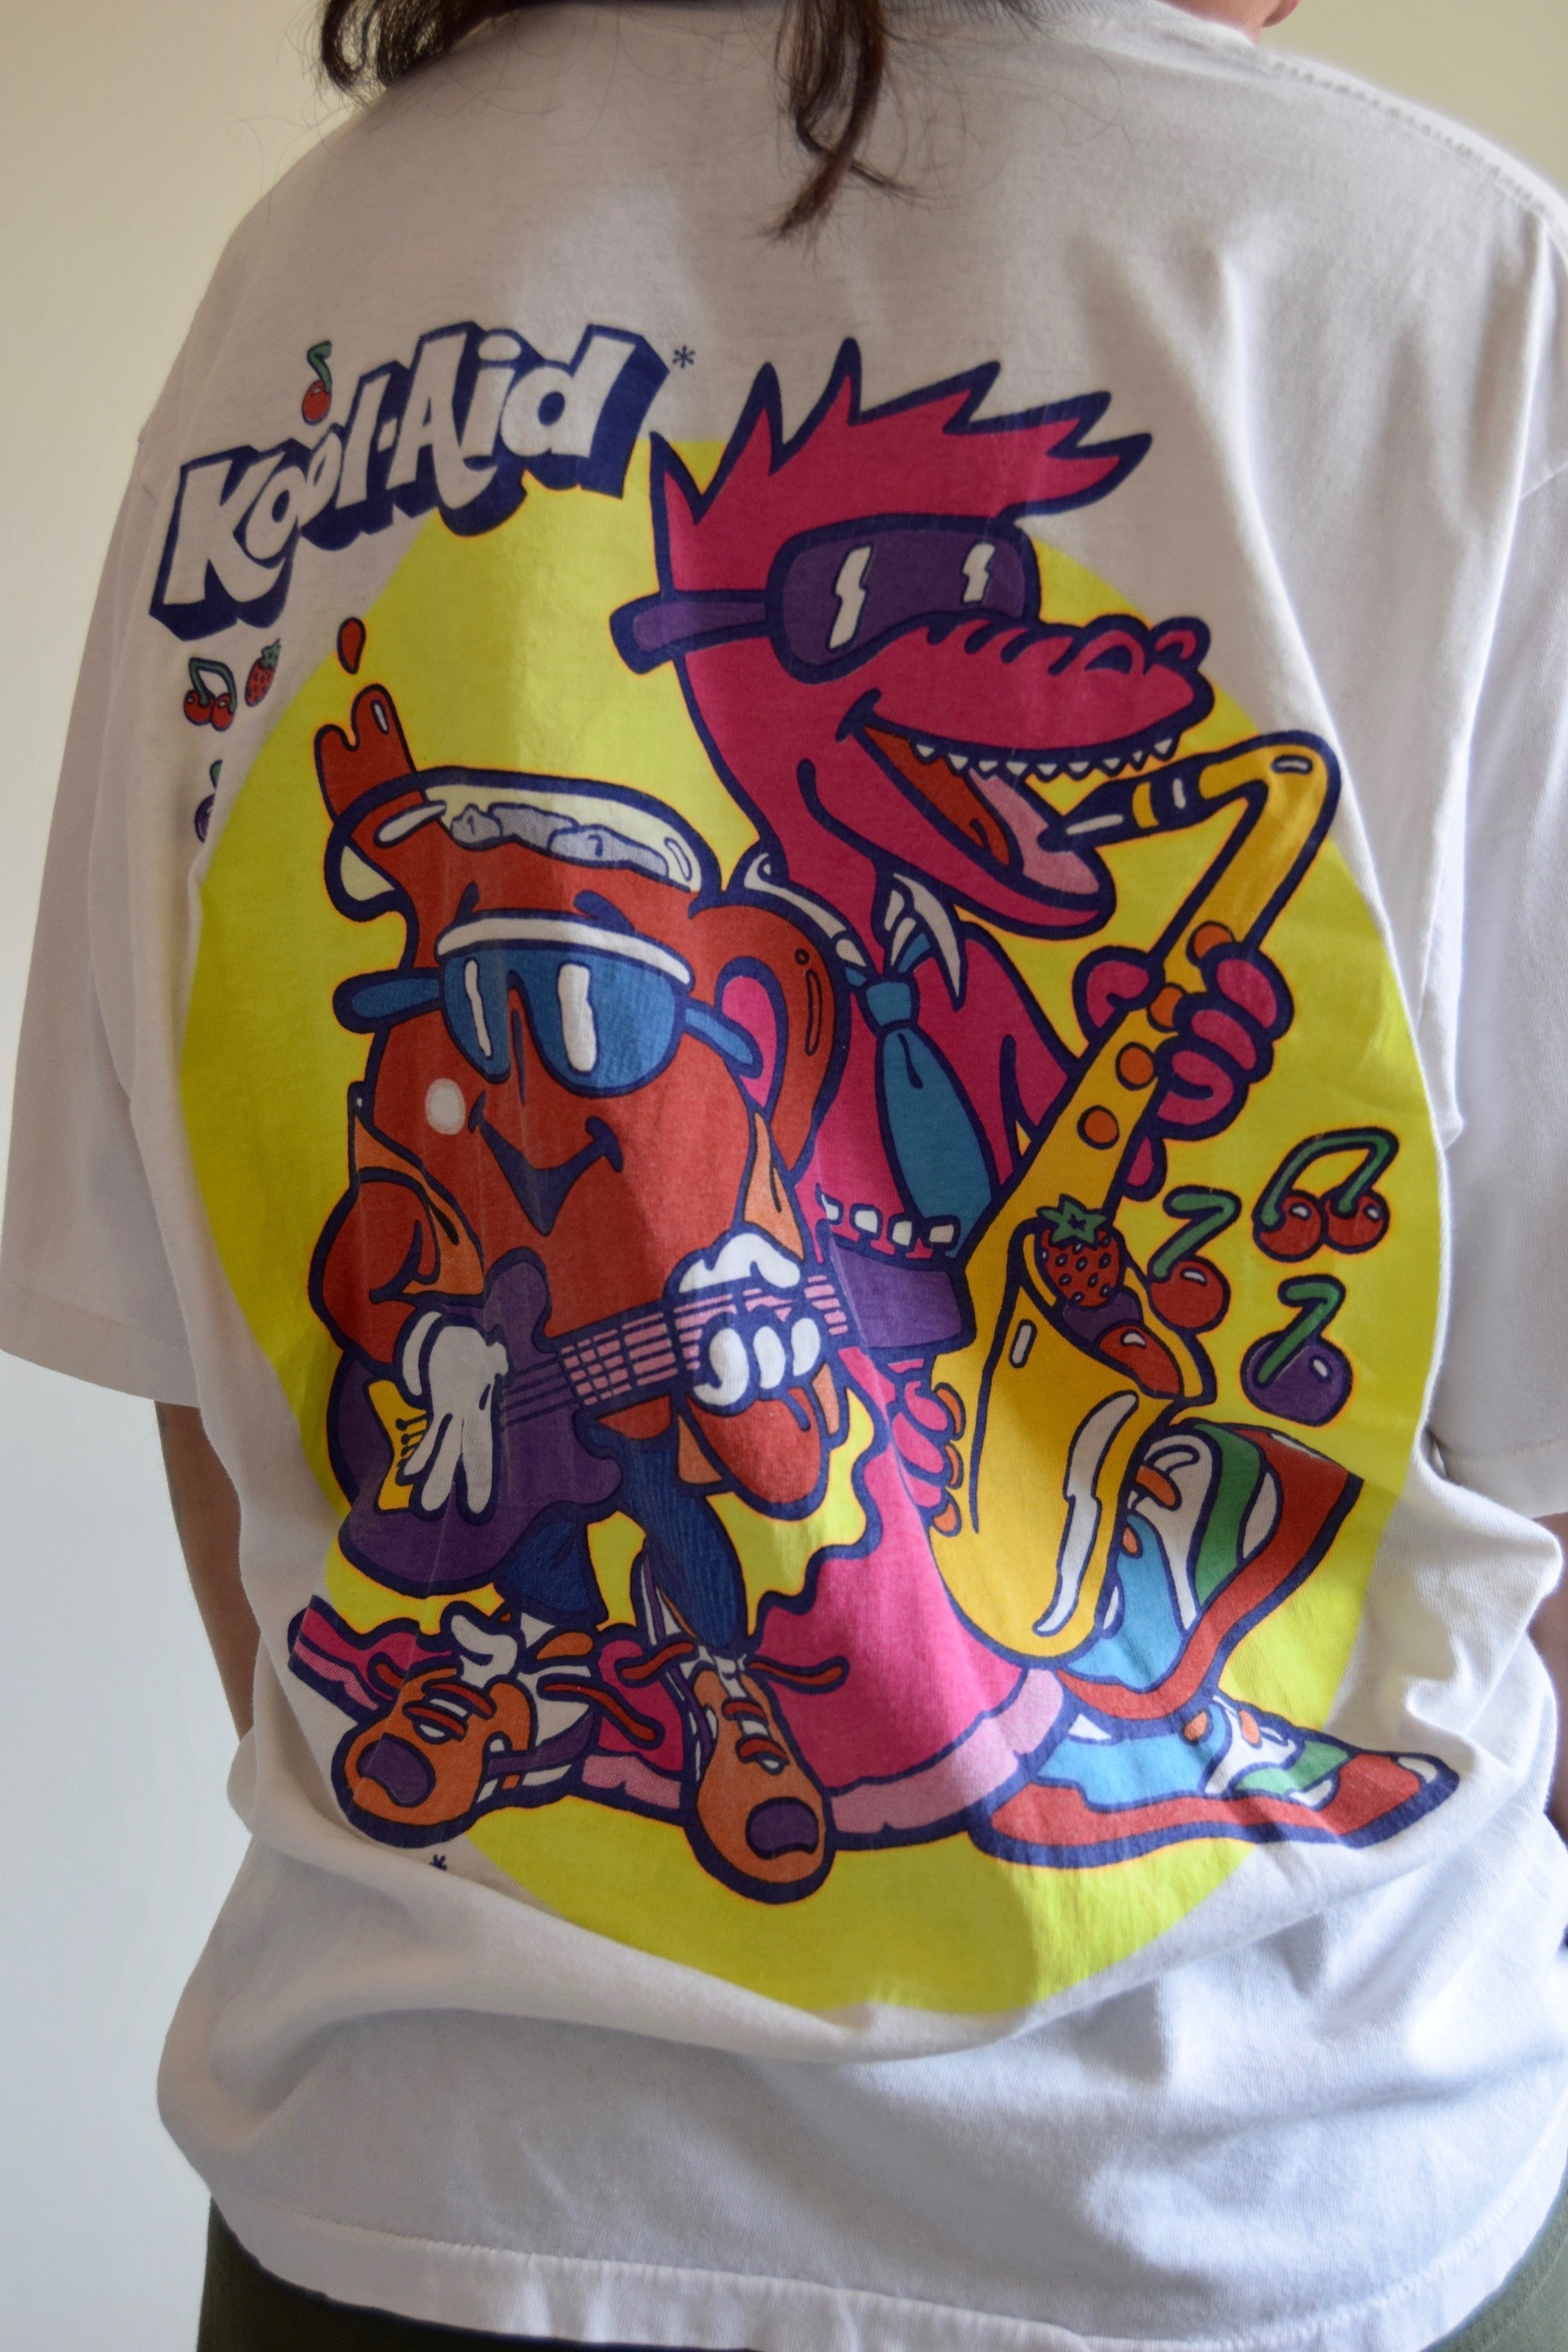 Vintage Rock-a-dile Kool-Aid T-Shirt FREE SHIPPING TO THE U.S.